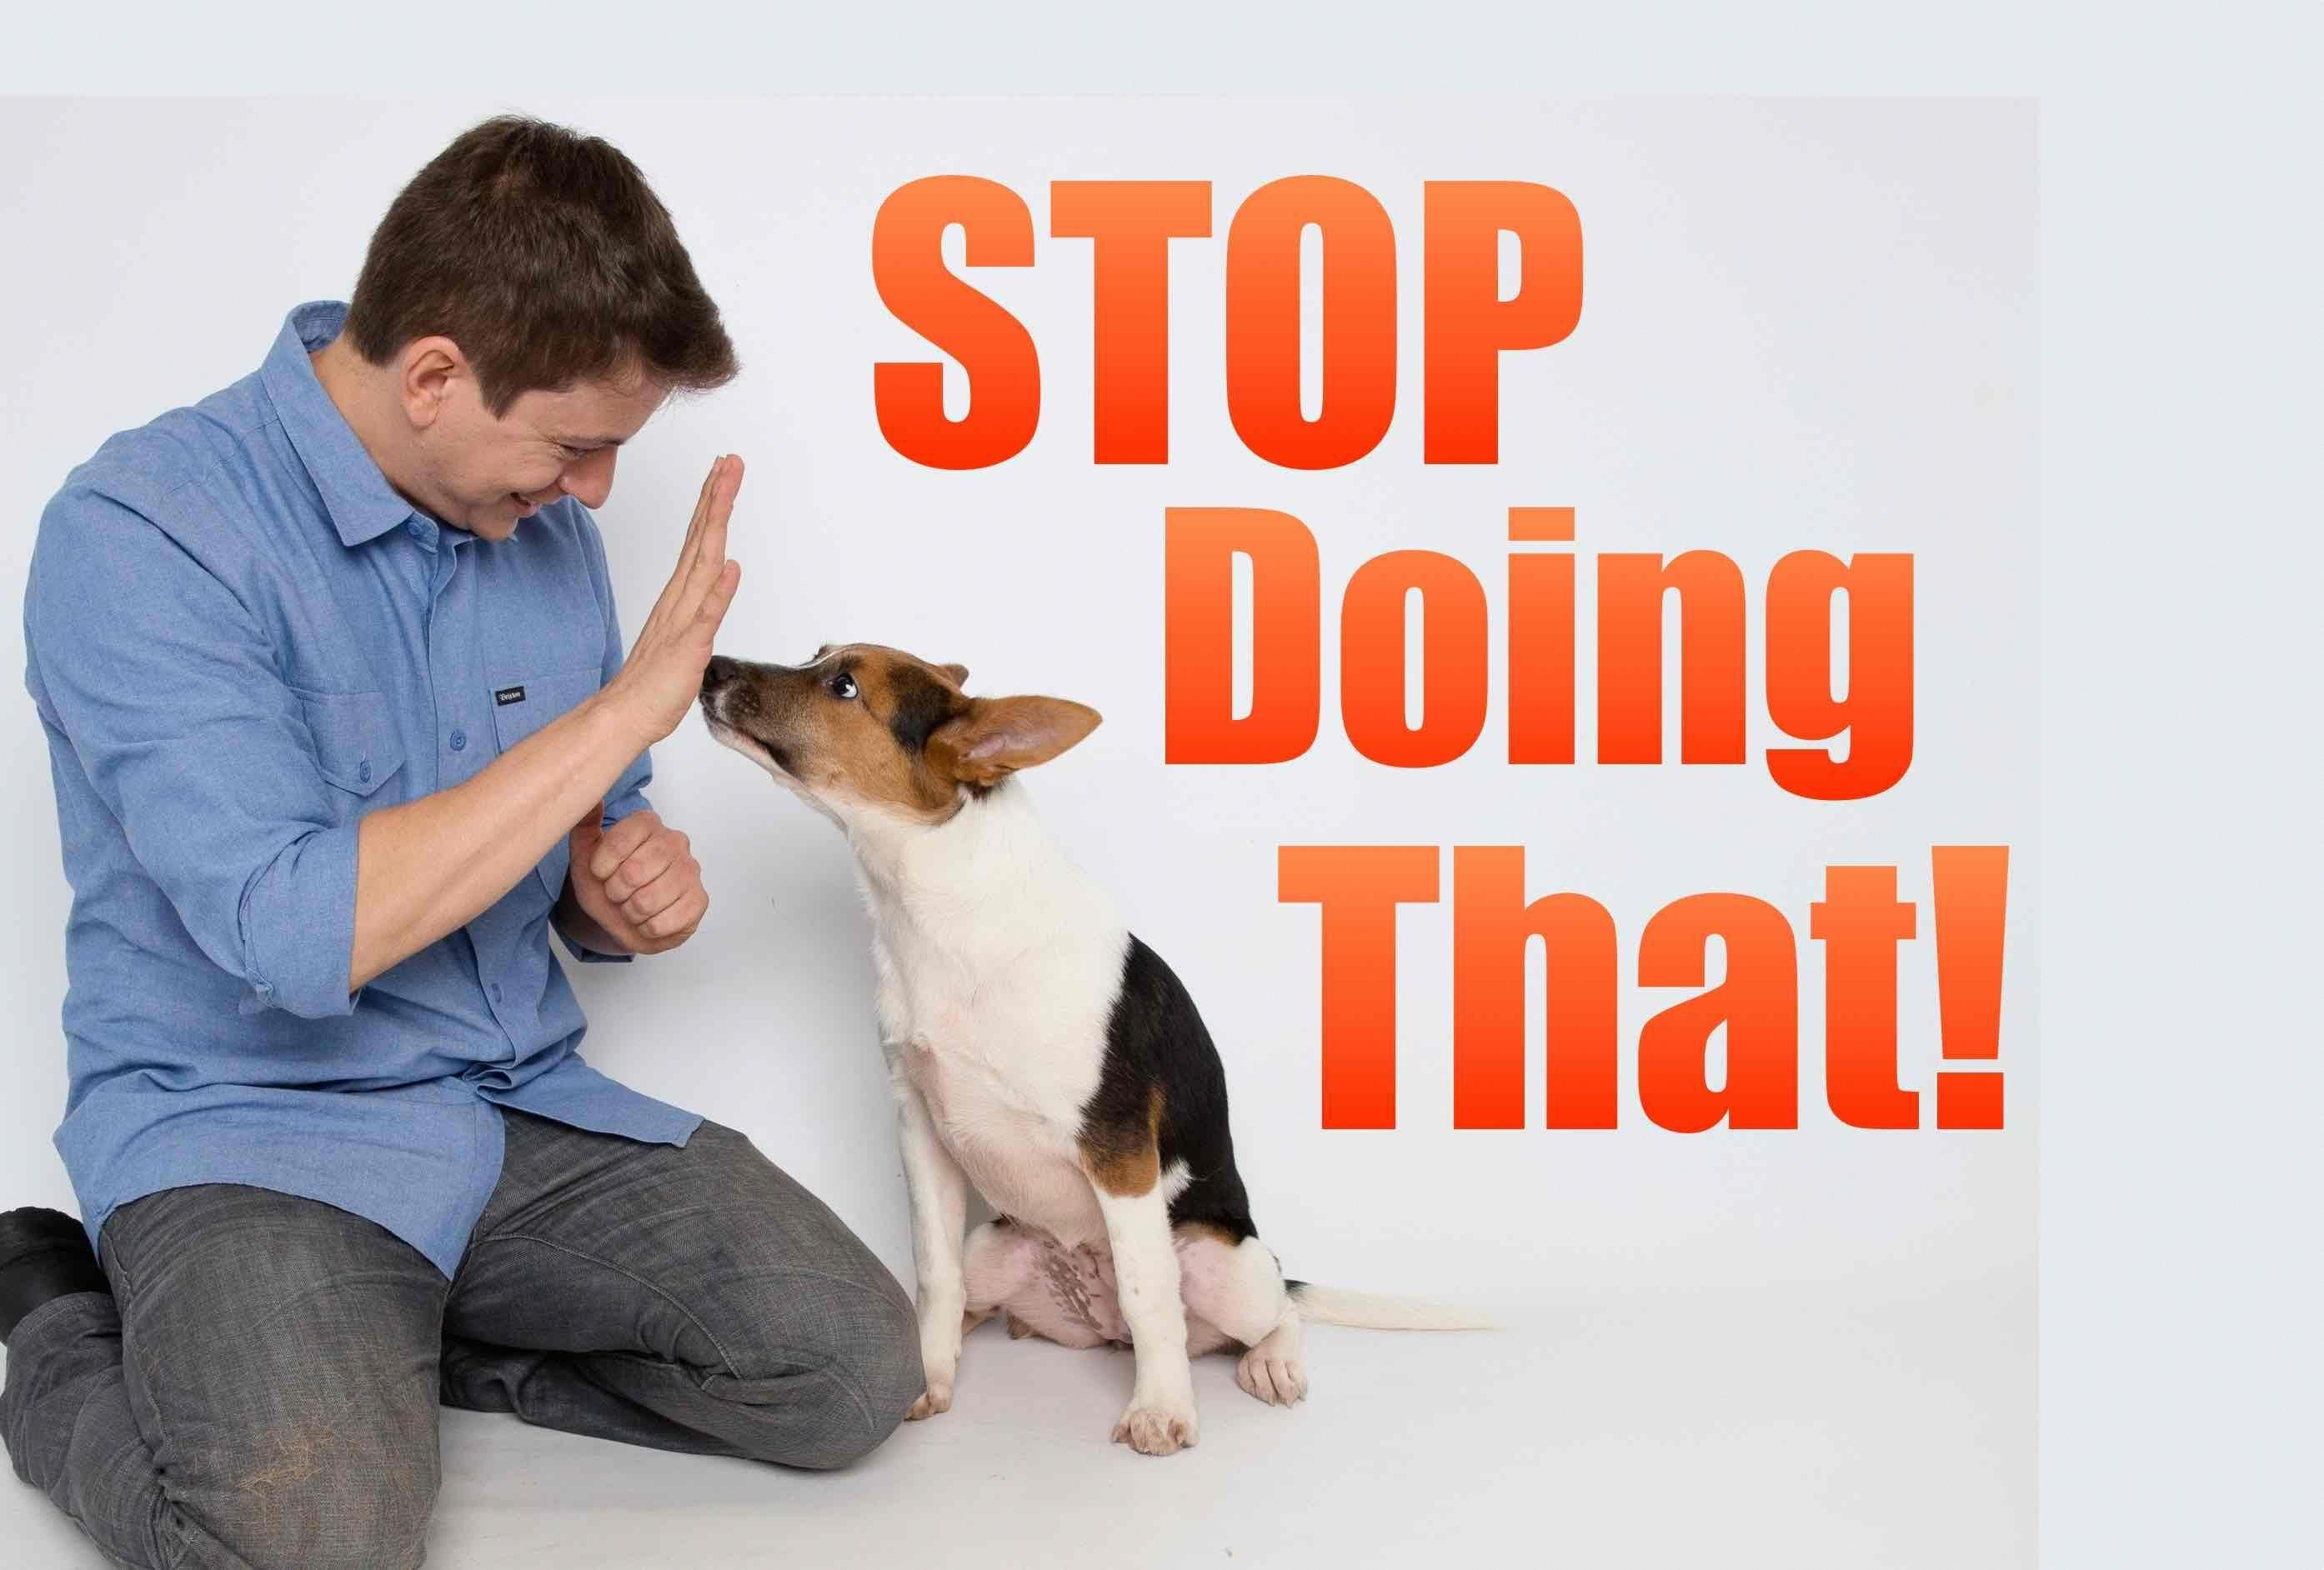 dog training how to; You could possibly tell what the